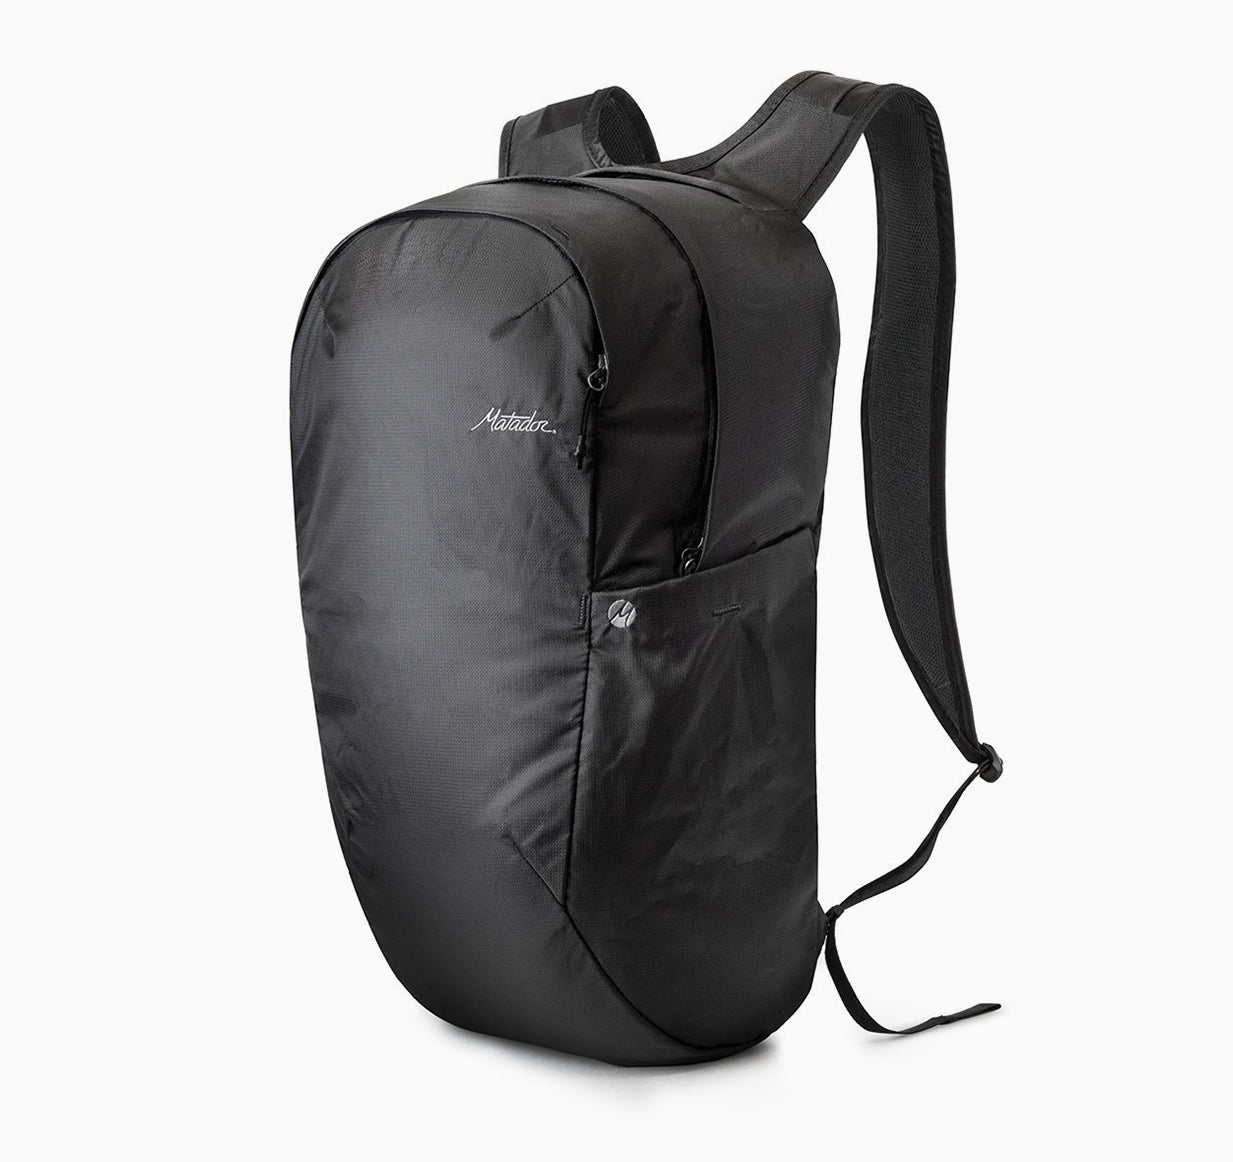 3/4 view of backpack on white background